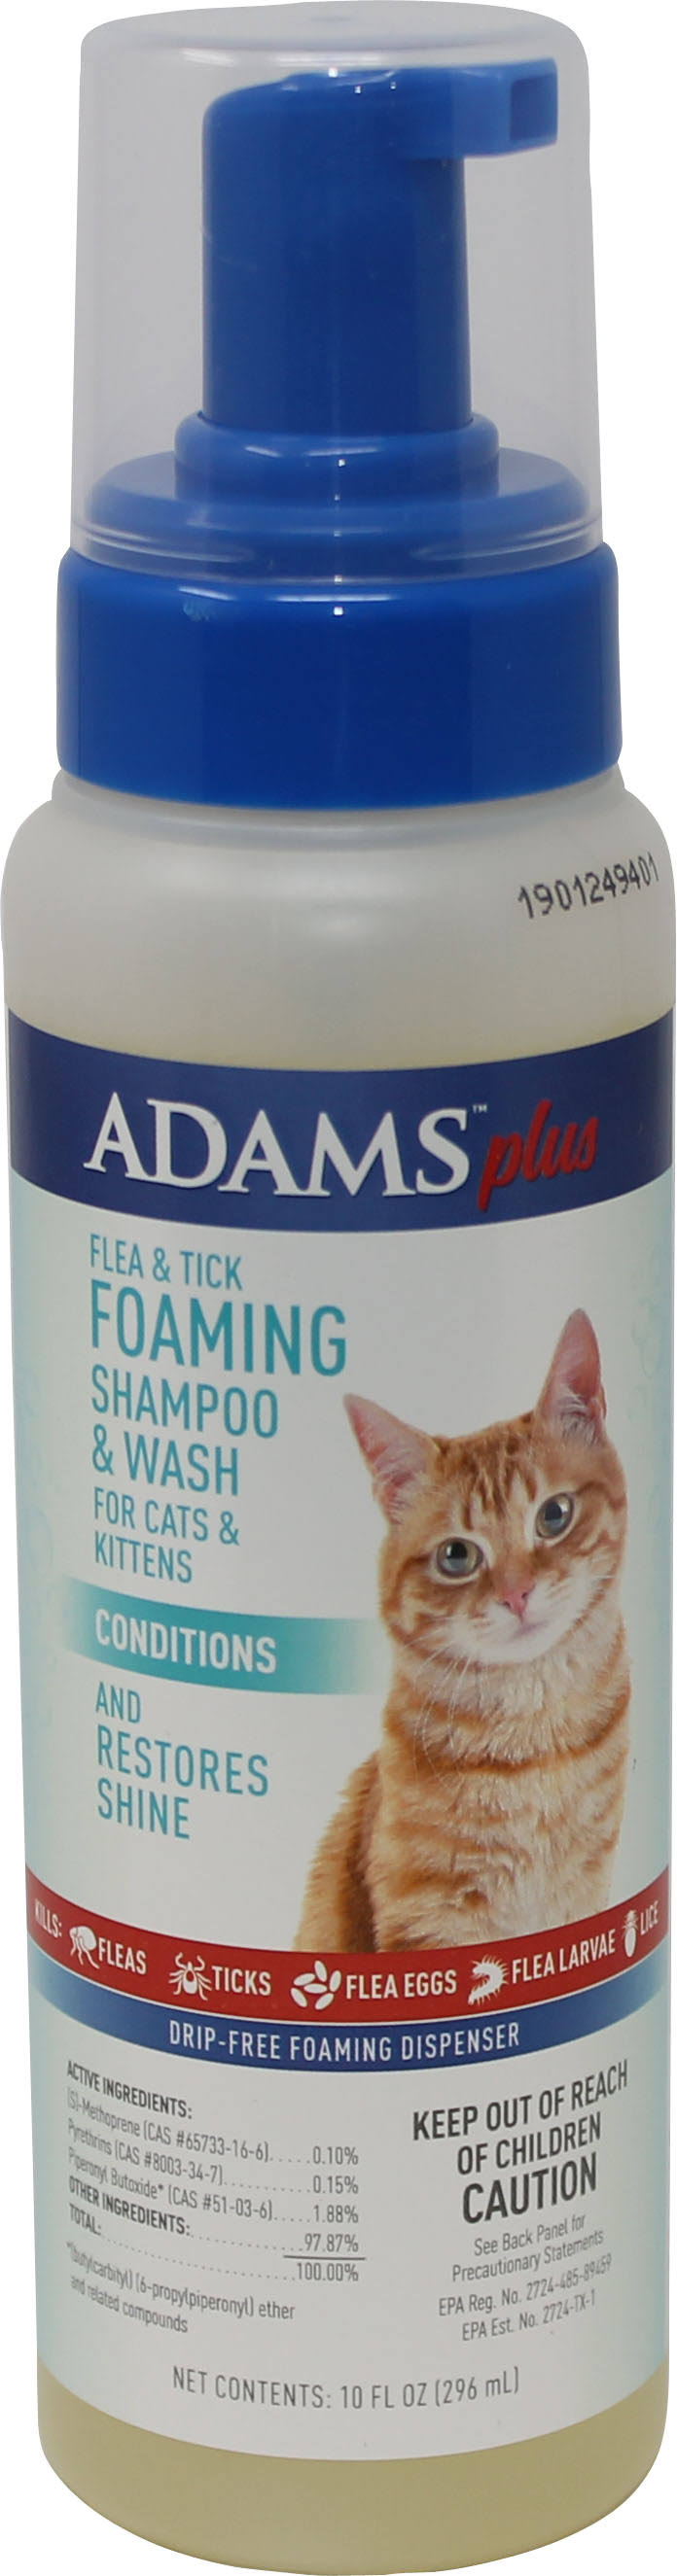 Adams Plus Flea and Tick Foaming Shampoo for Cat